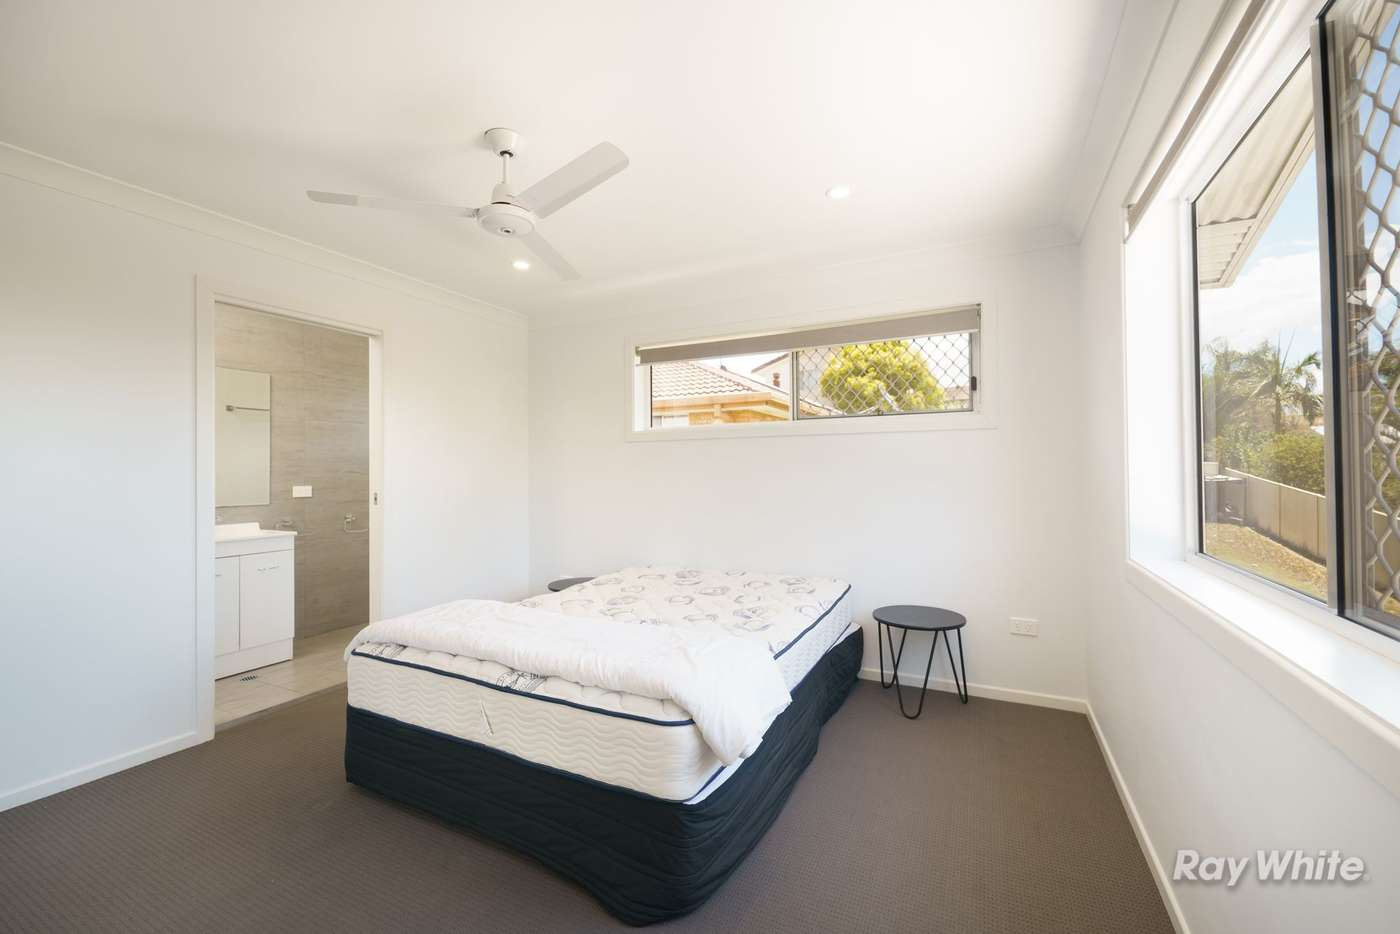 Sixth view of Homely house listing, 4 Peppermint Place, South Grafton NSW 2460